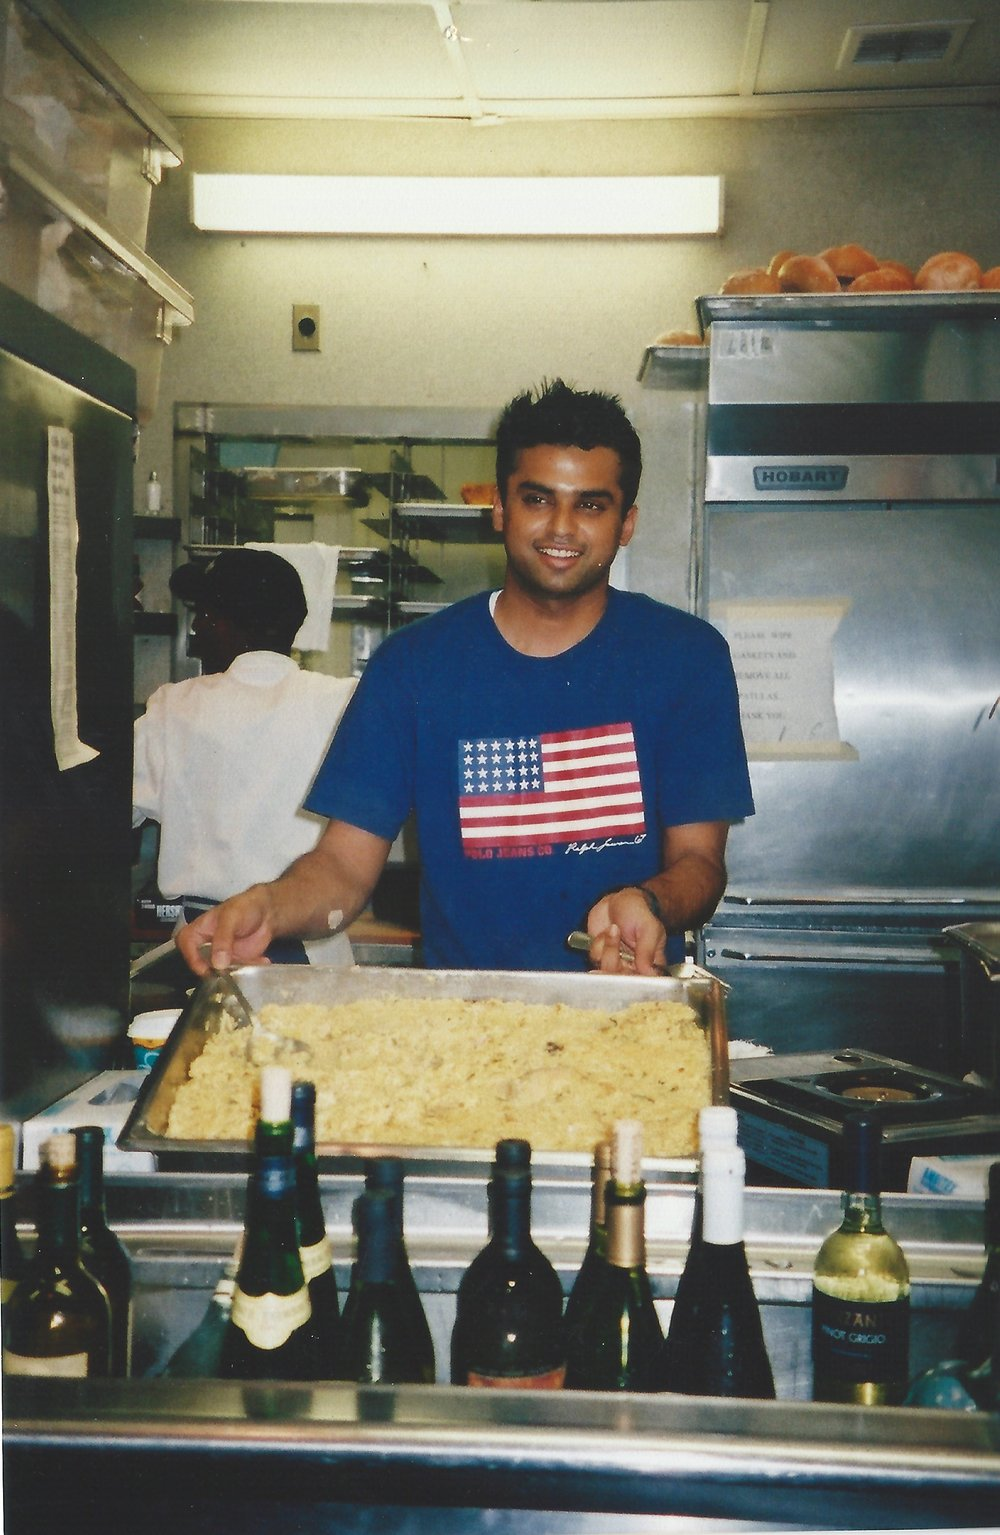 Curry Leaf Cafe's Kanthi Thamma at Narcoossee's in the year 2000, shortly after starting his mentorship under Chef Celina Tio at The Grand Floridian hotel, Disney World Florida